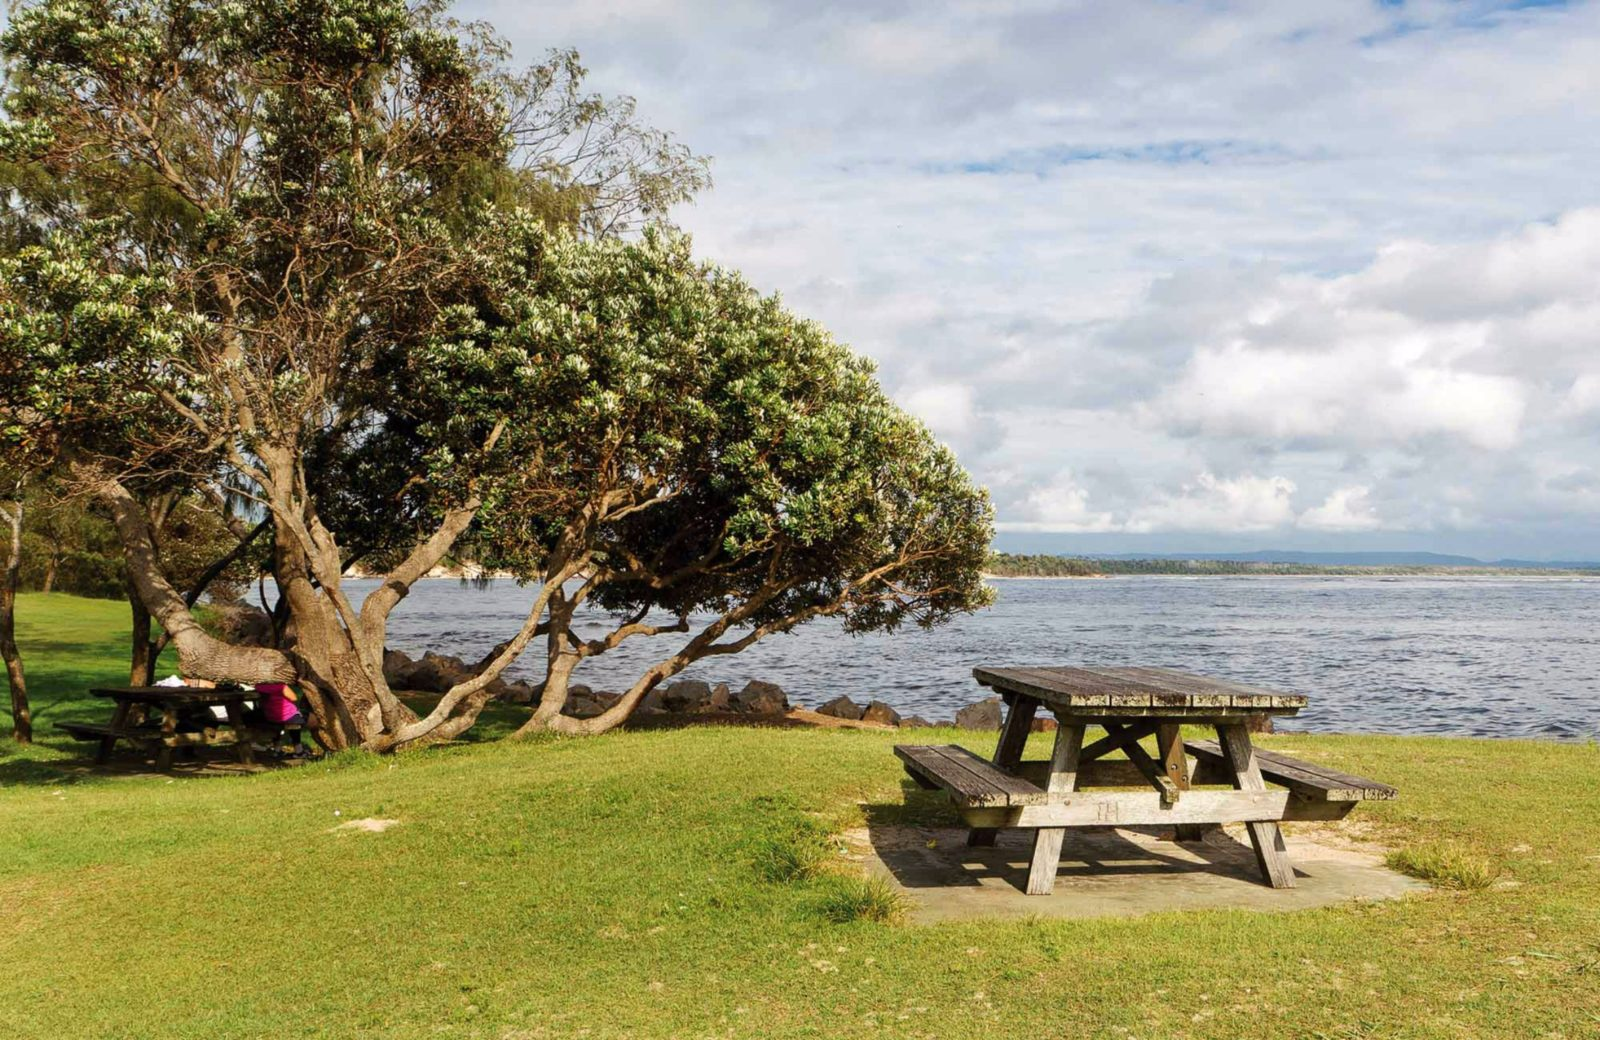 Picnic table overlooking the water. Photo: Rob Cleary